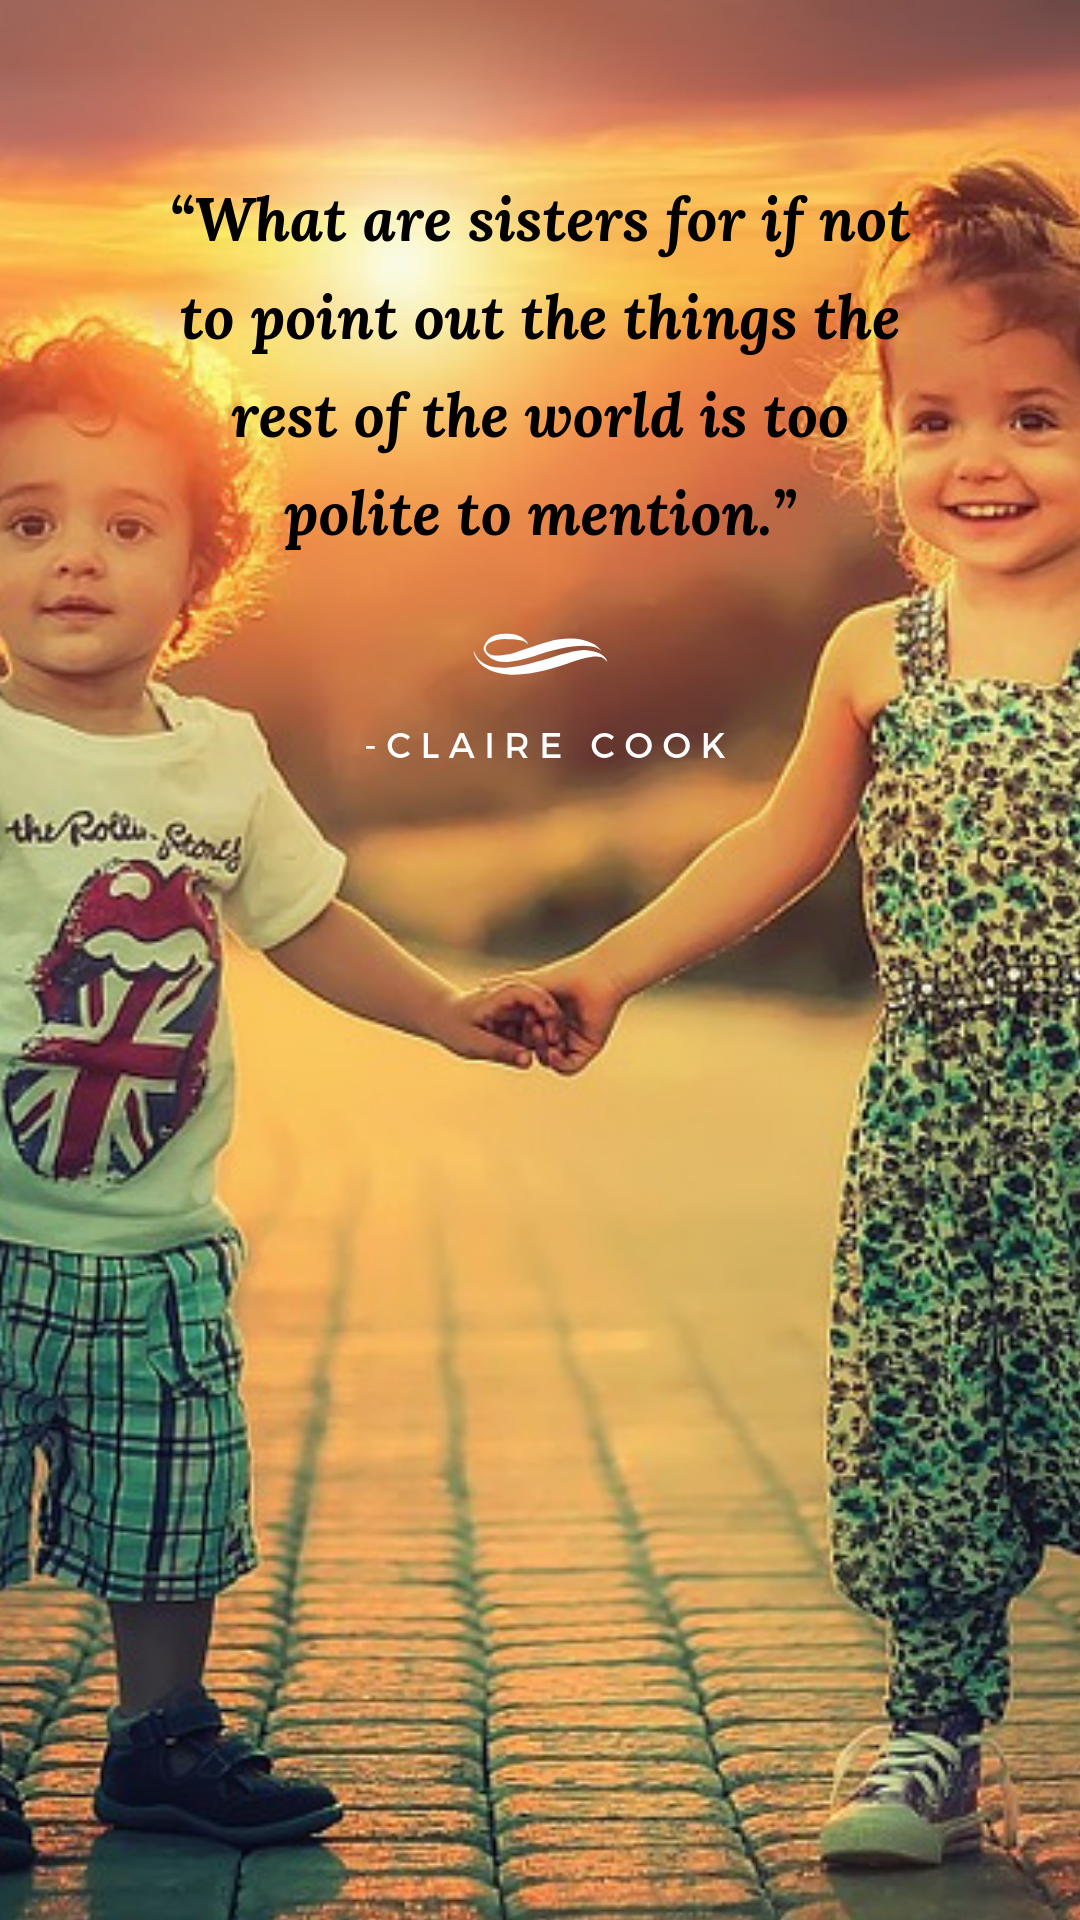 What are sisters for - Claire Cook